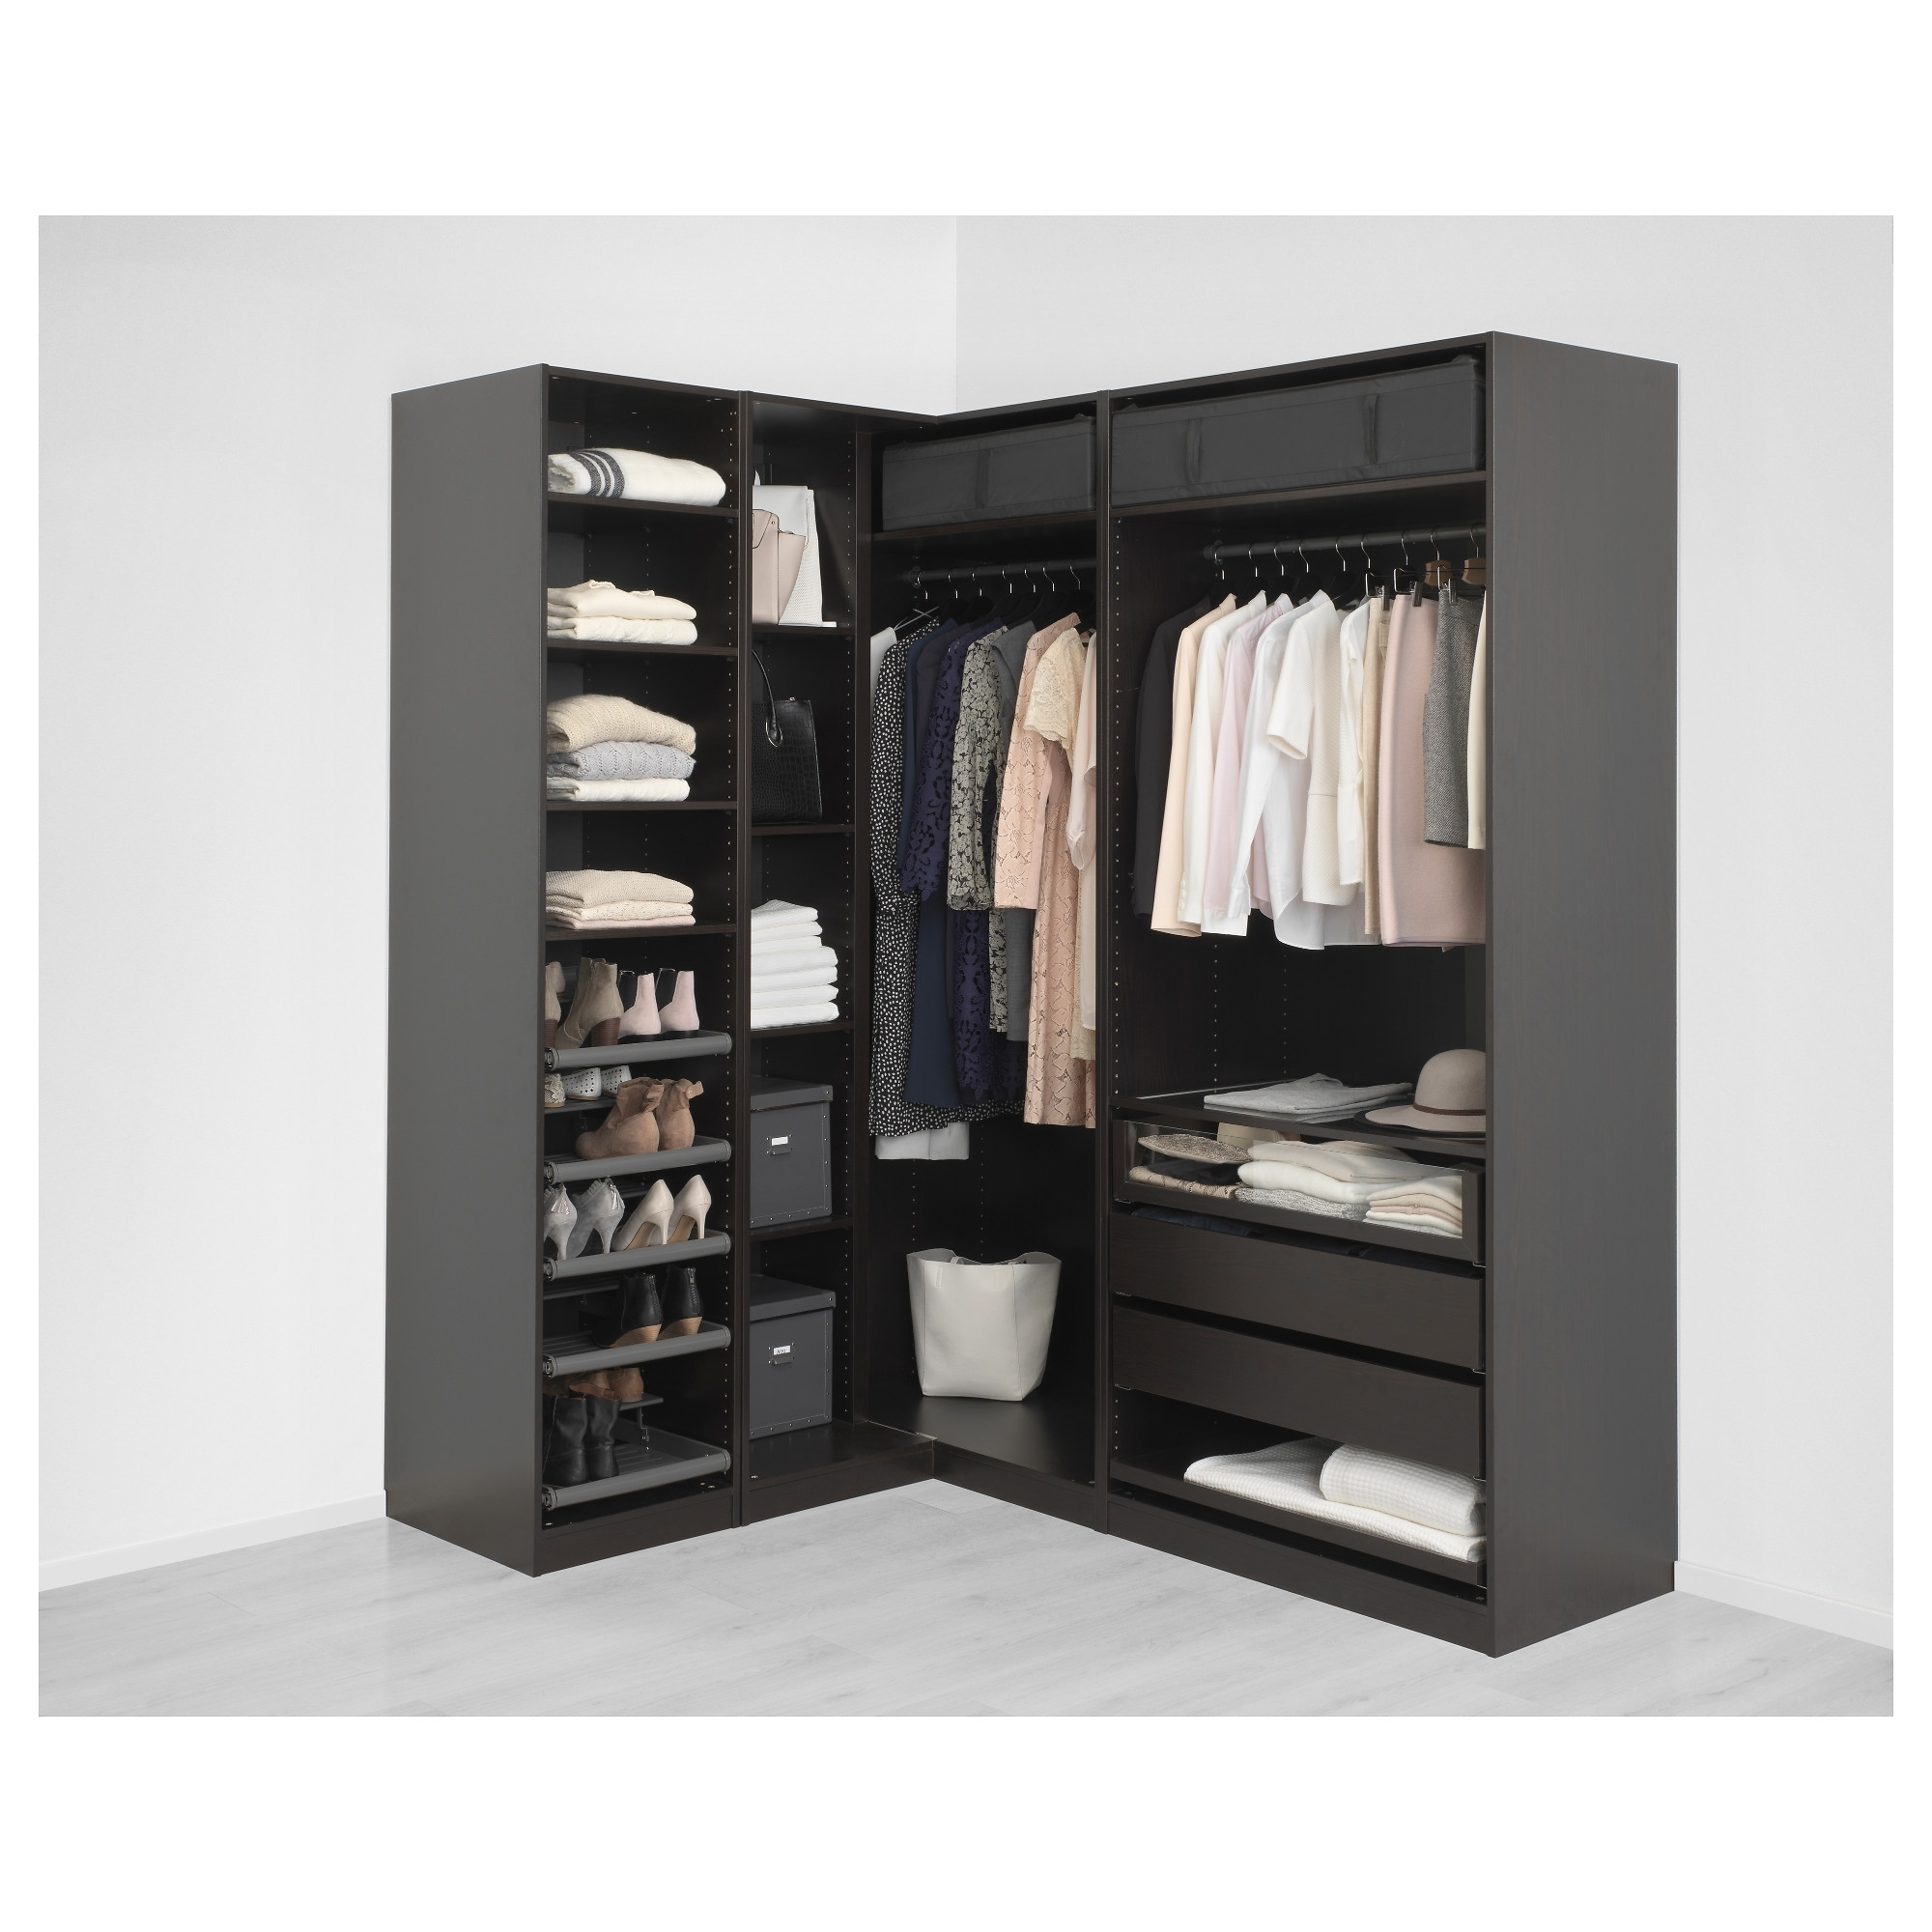 corner wadrobe cabinet bedroomrobe modern also with wardrobe phenomenal size closets ikea cabinets bedroom design furniture white black designs clothes playwood closet terrific